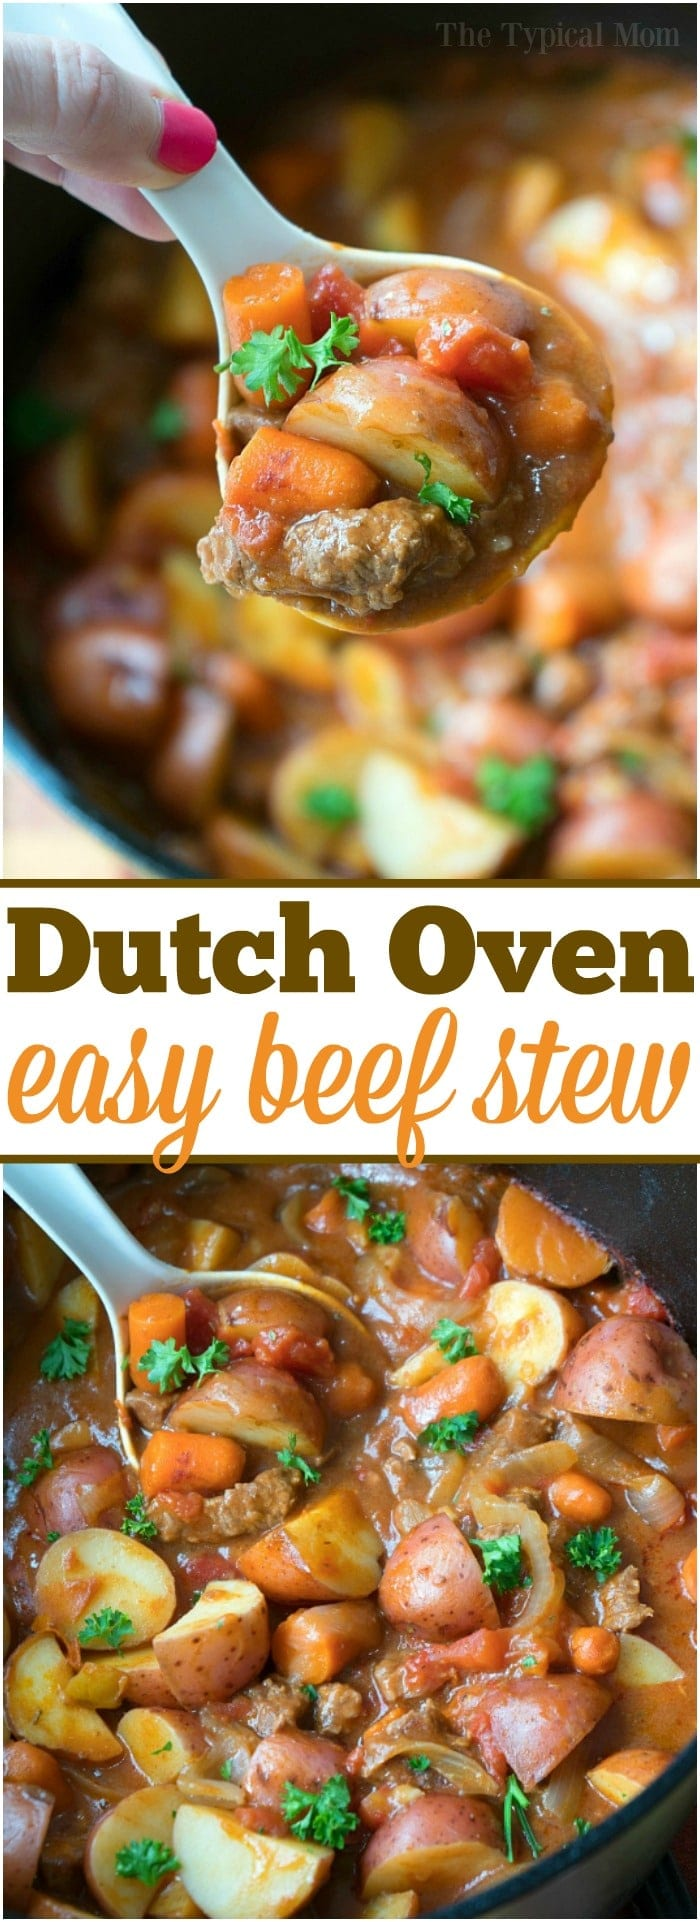 This easy Dutch Oven stew is hearty & will bring you back to your childhood! Packed with tender beef and vegetables it's the perfect dinner or camping meal. #dutchoven #stew #beef #easy #recipe #camping #meals #recipes